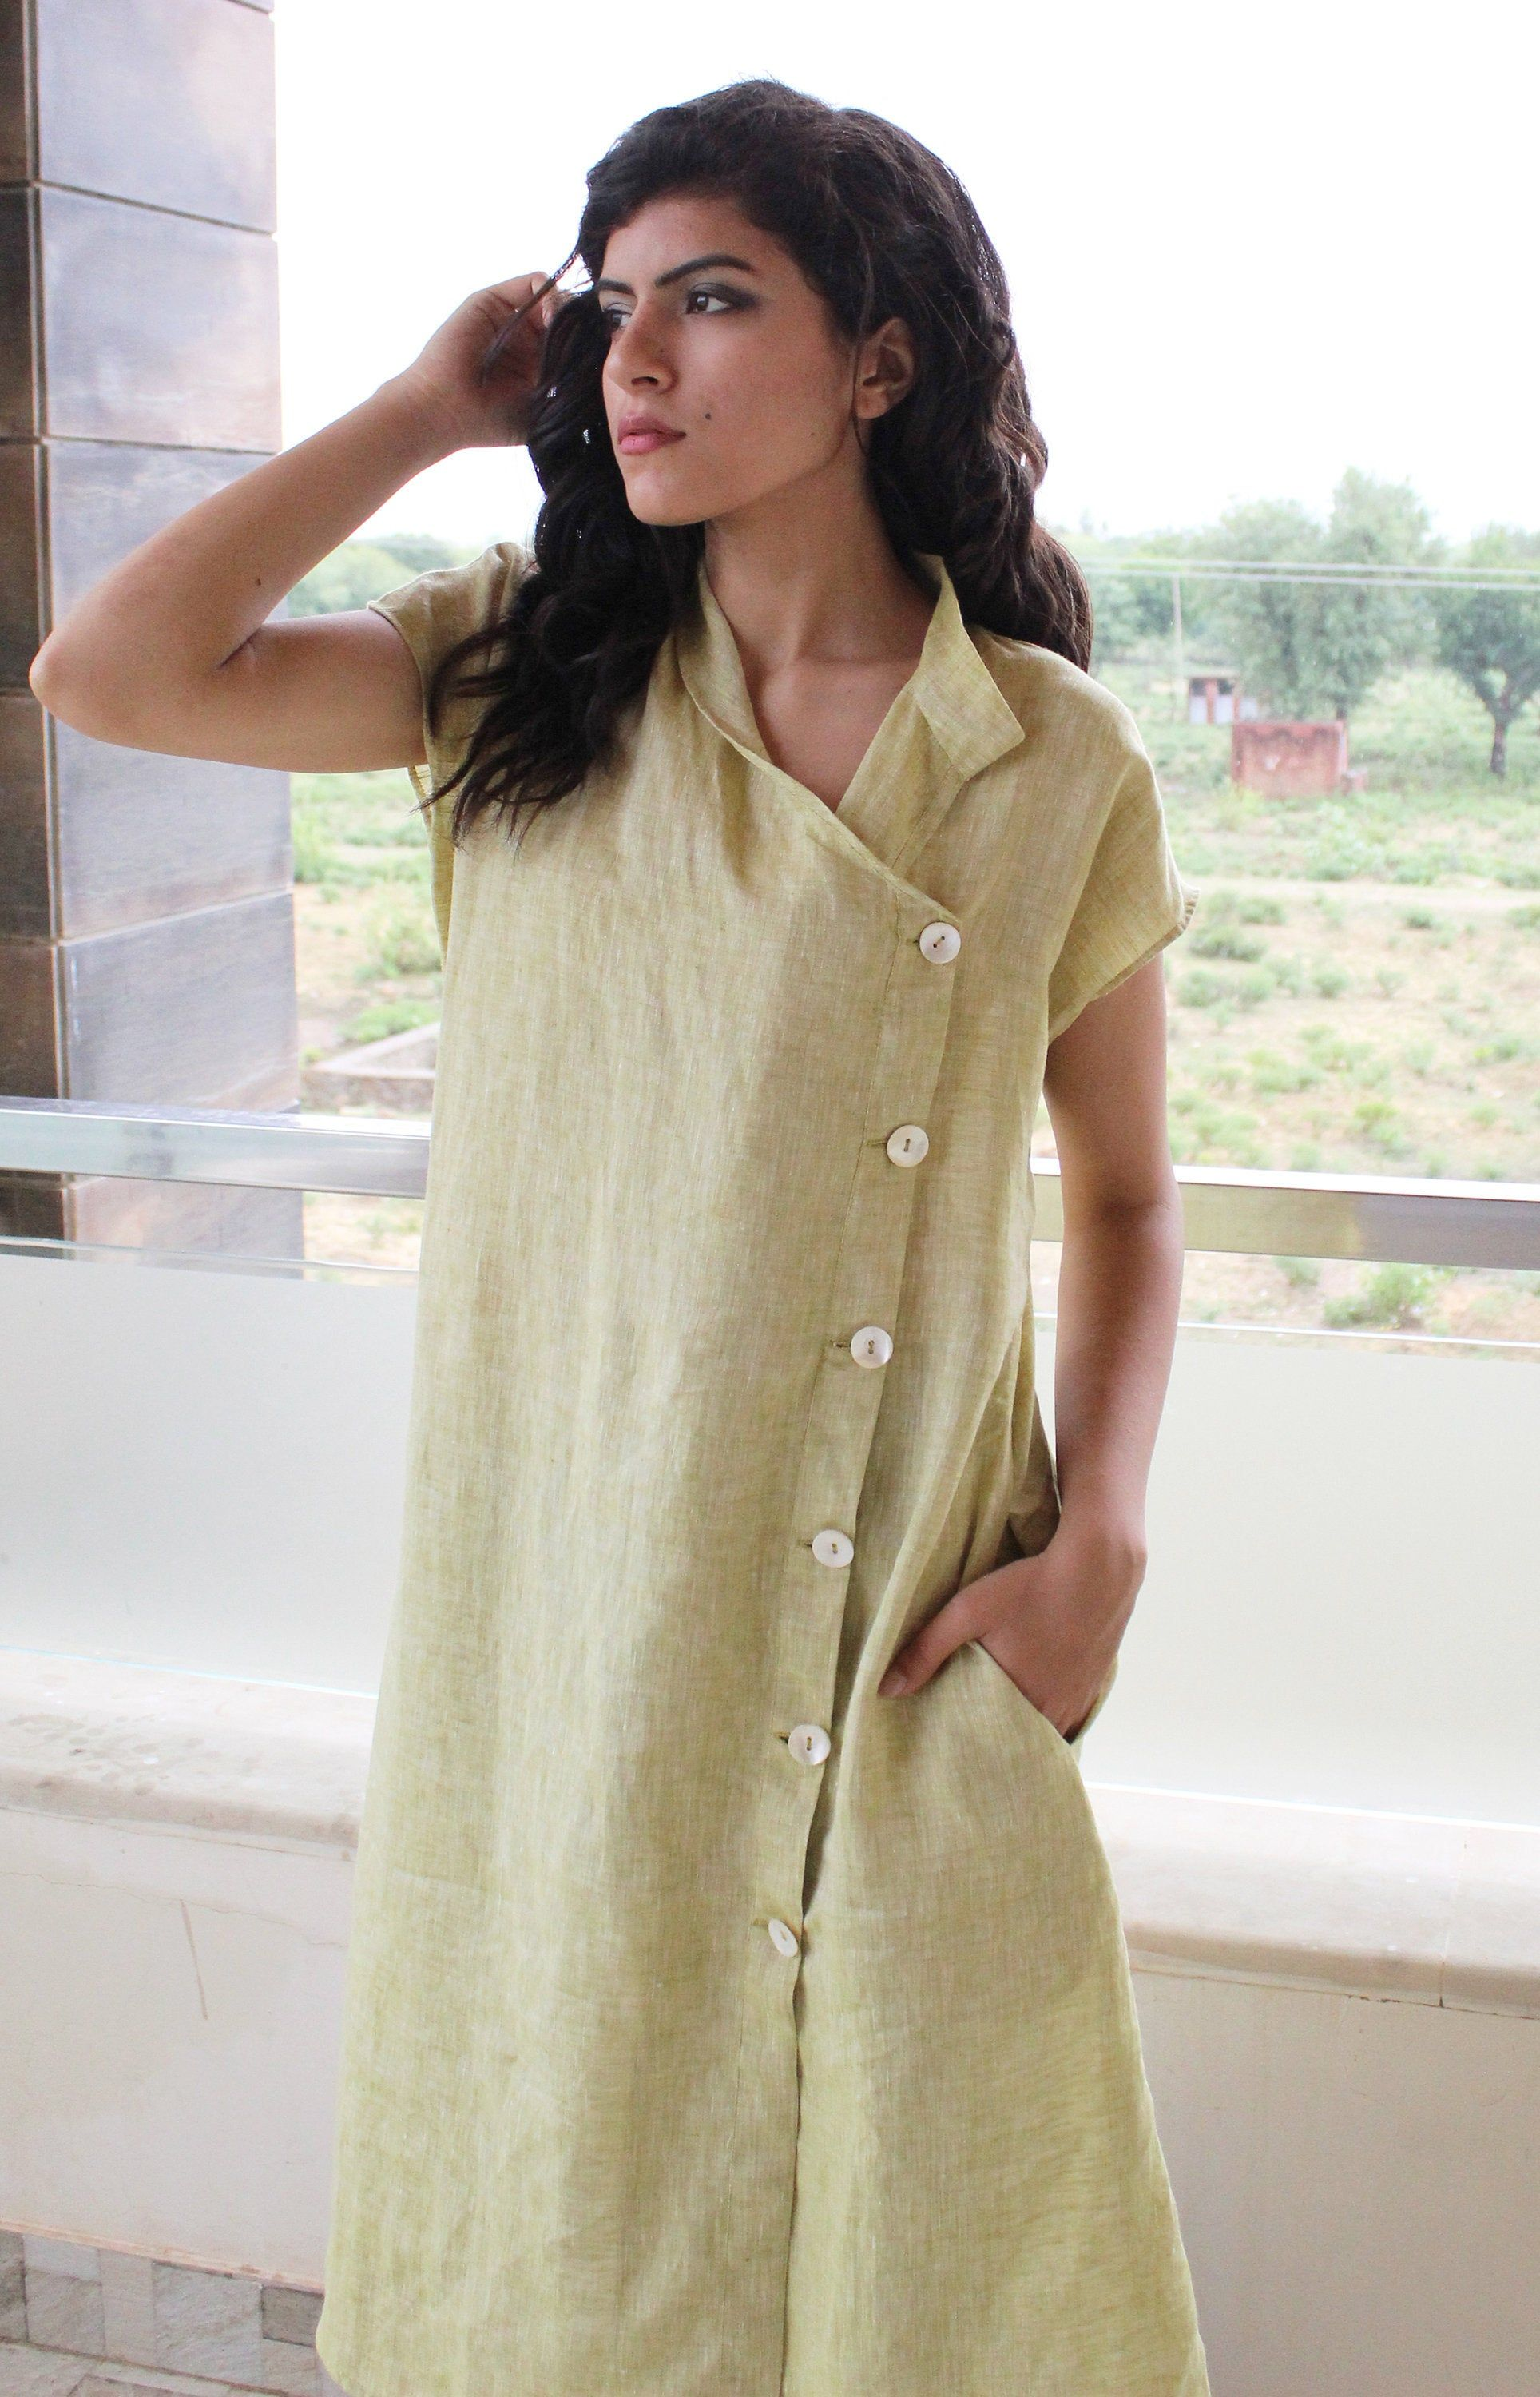 Linen Dress Organic Linen Dress Linen Short Sleeve Dress Etsy In 2020 Linen Dress Cowl Neck Dress Linen Dresses